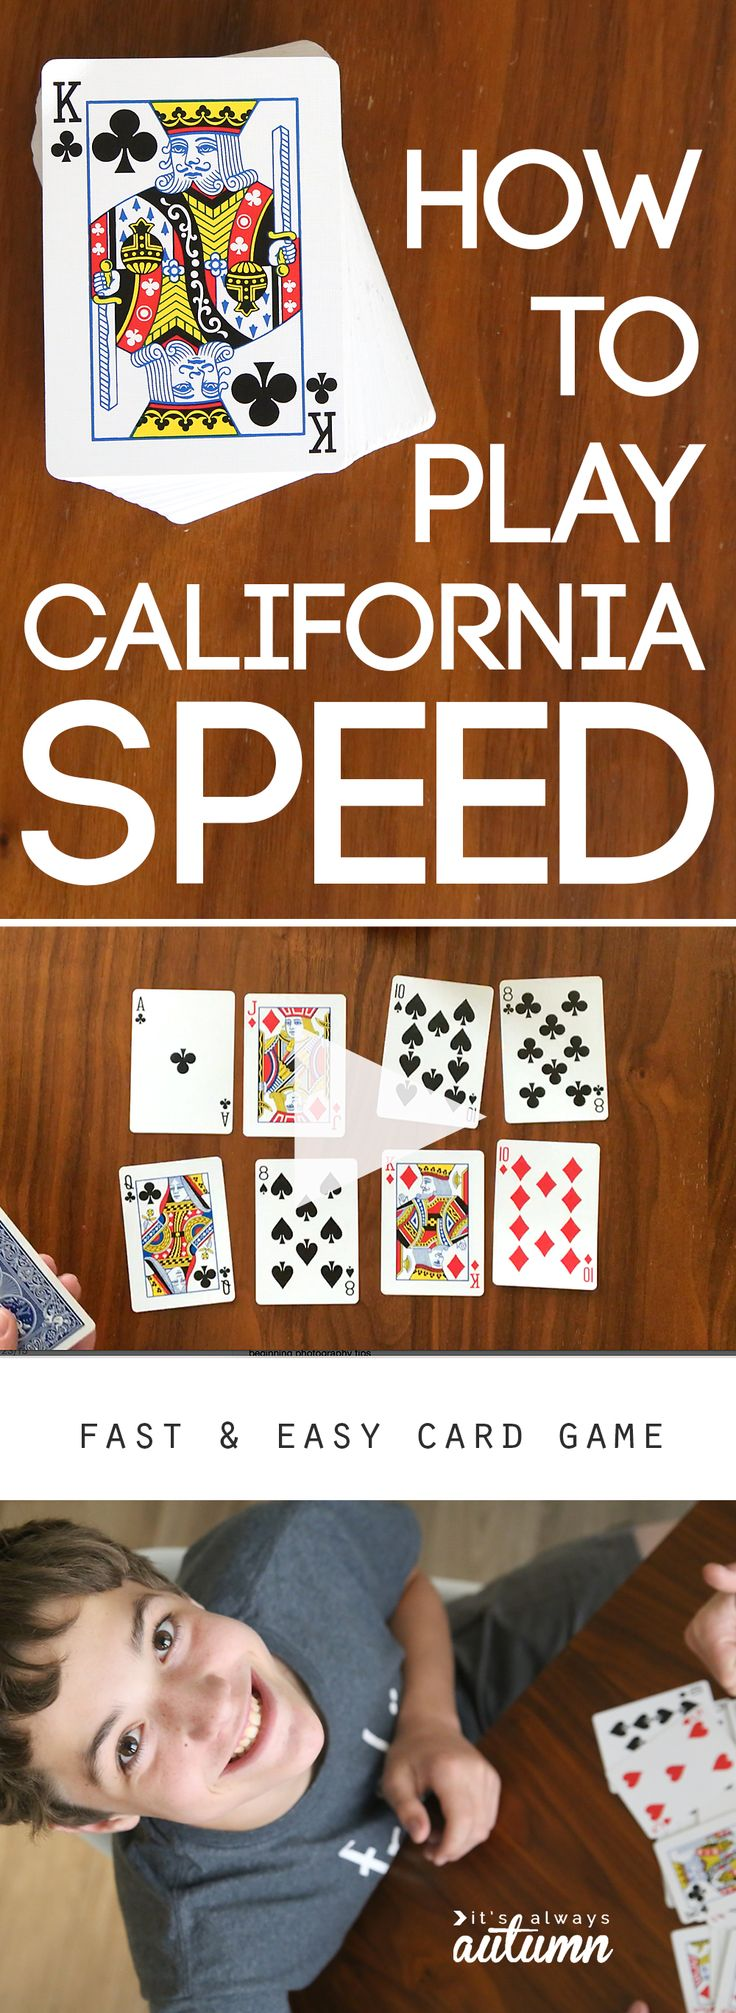 how to play California Speed